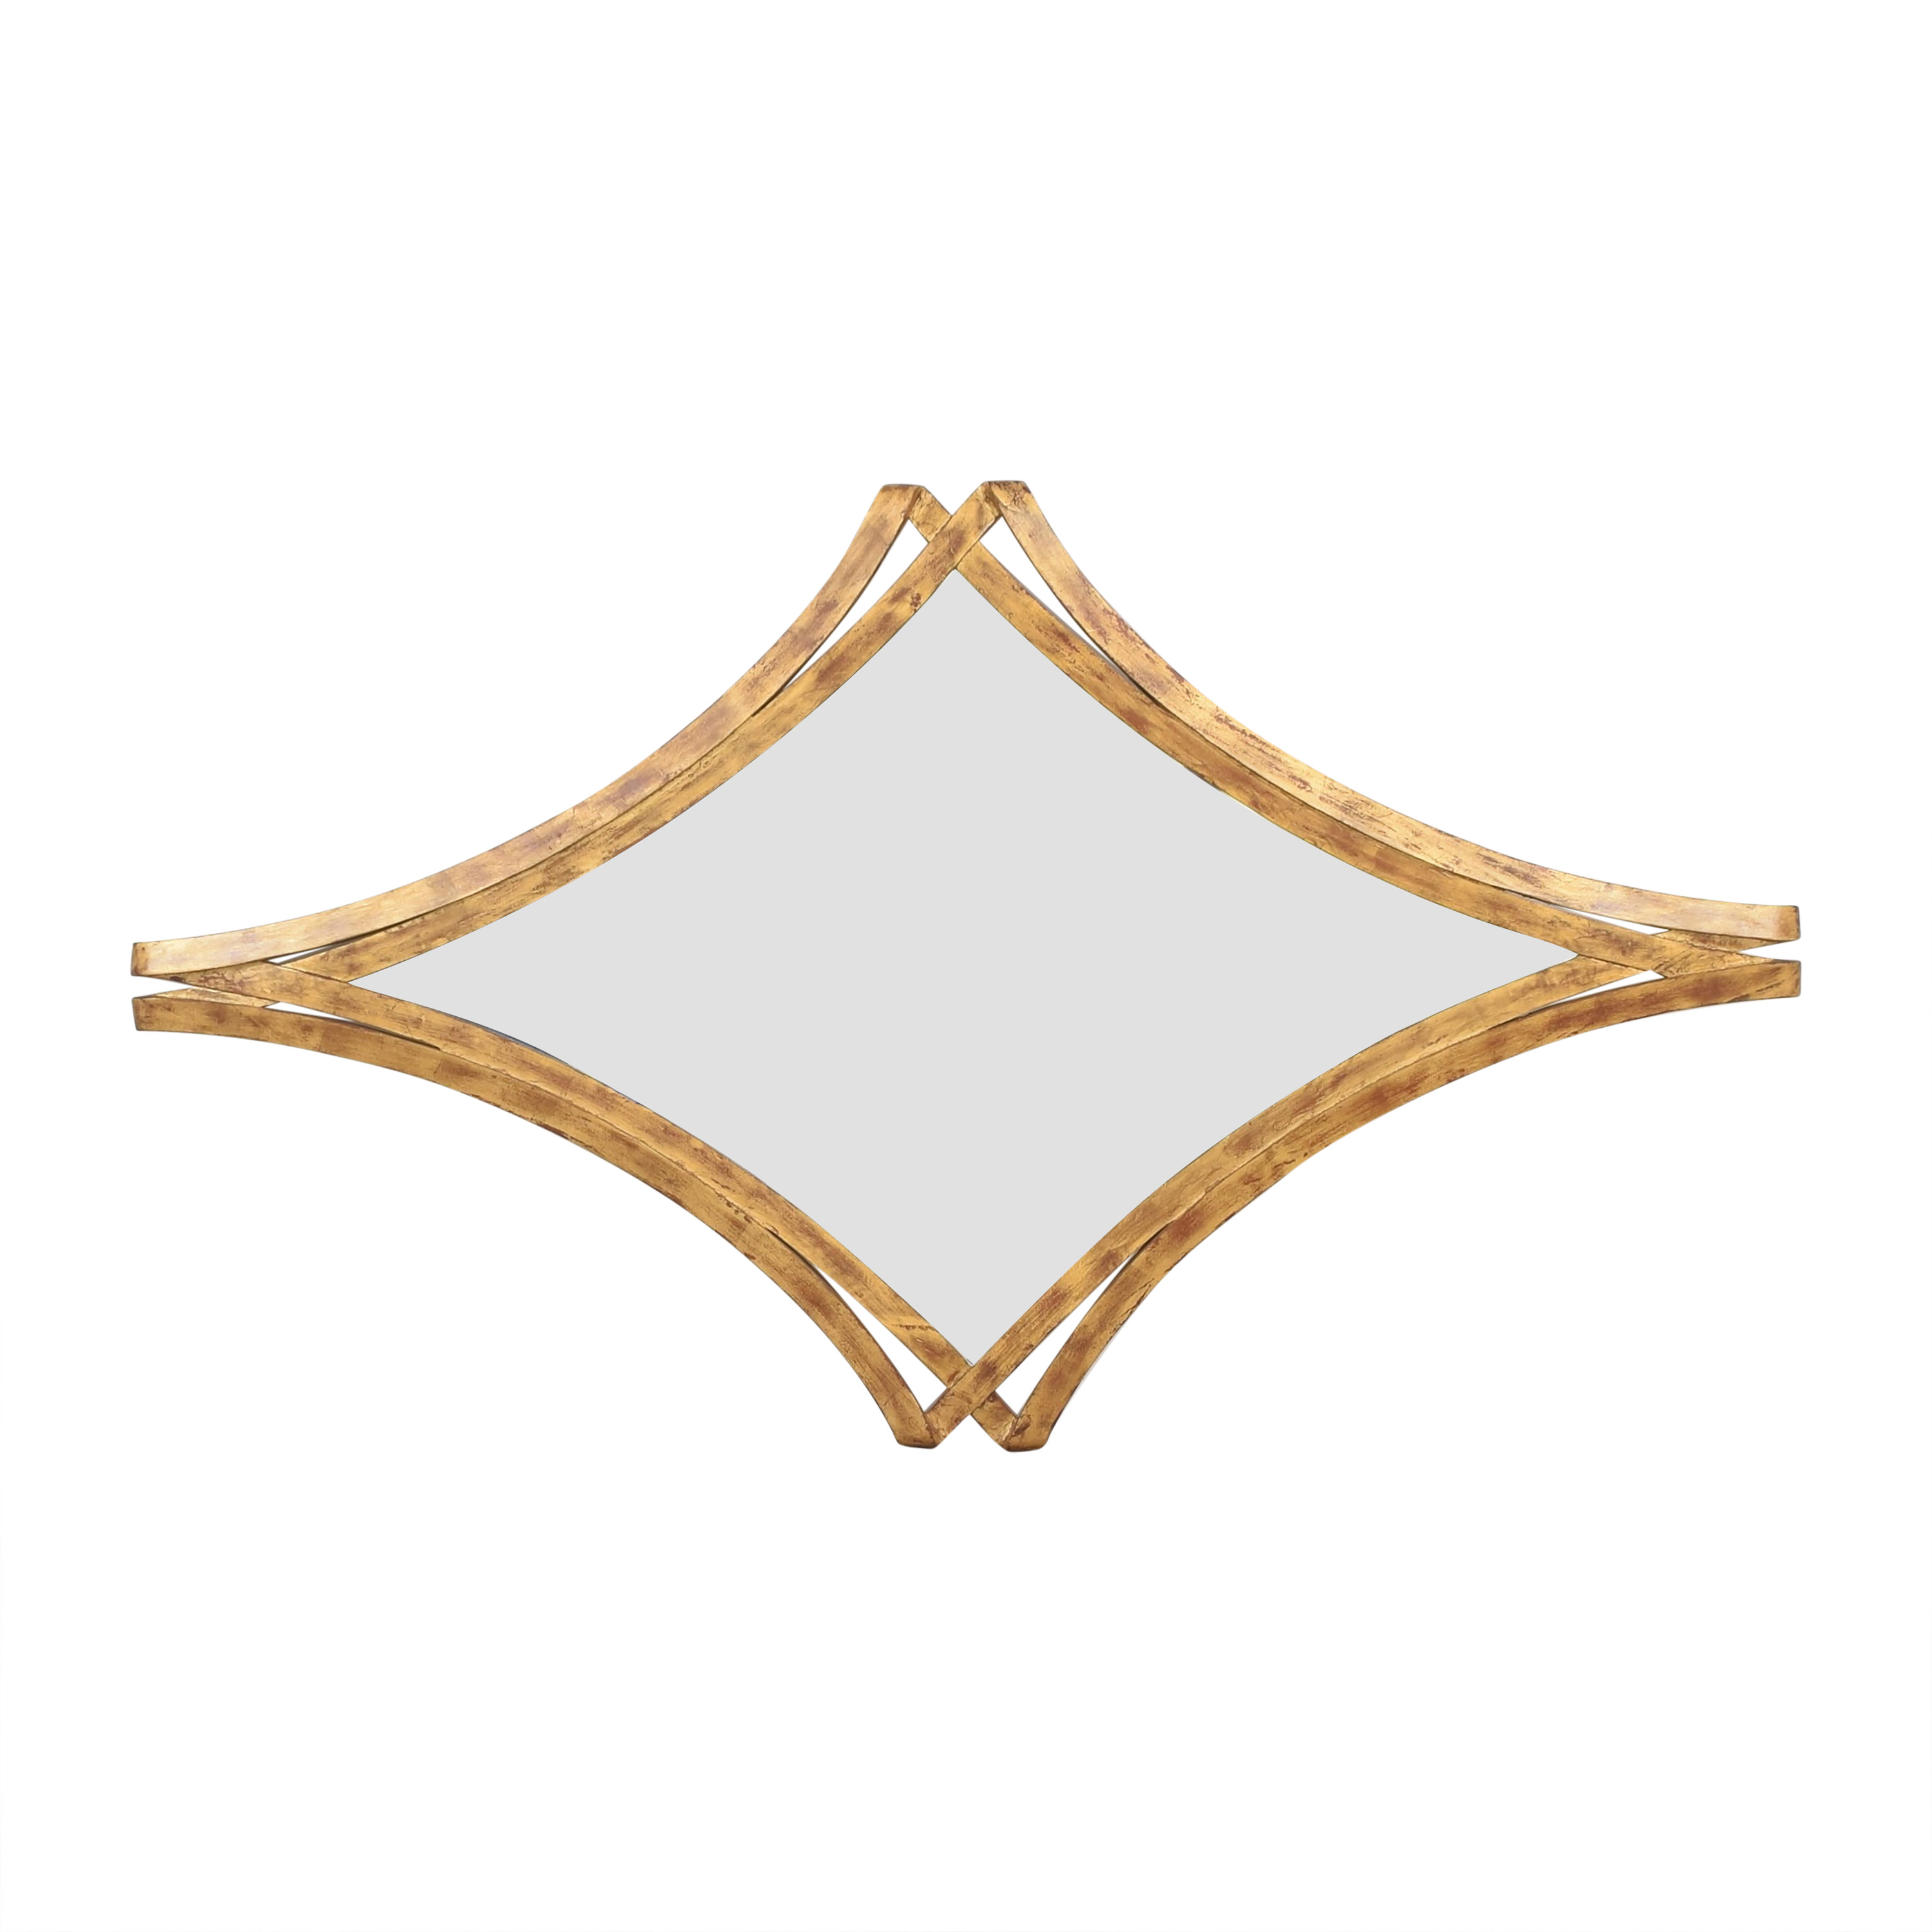 Christopher Guy Christopher Guy Gold Gilded Wall Mirror price